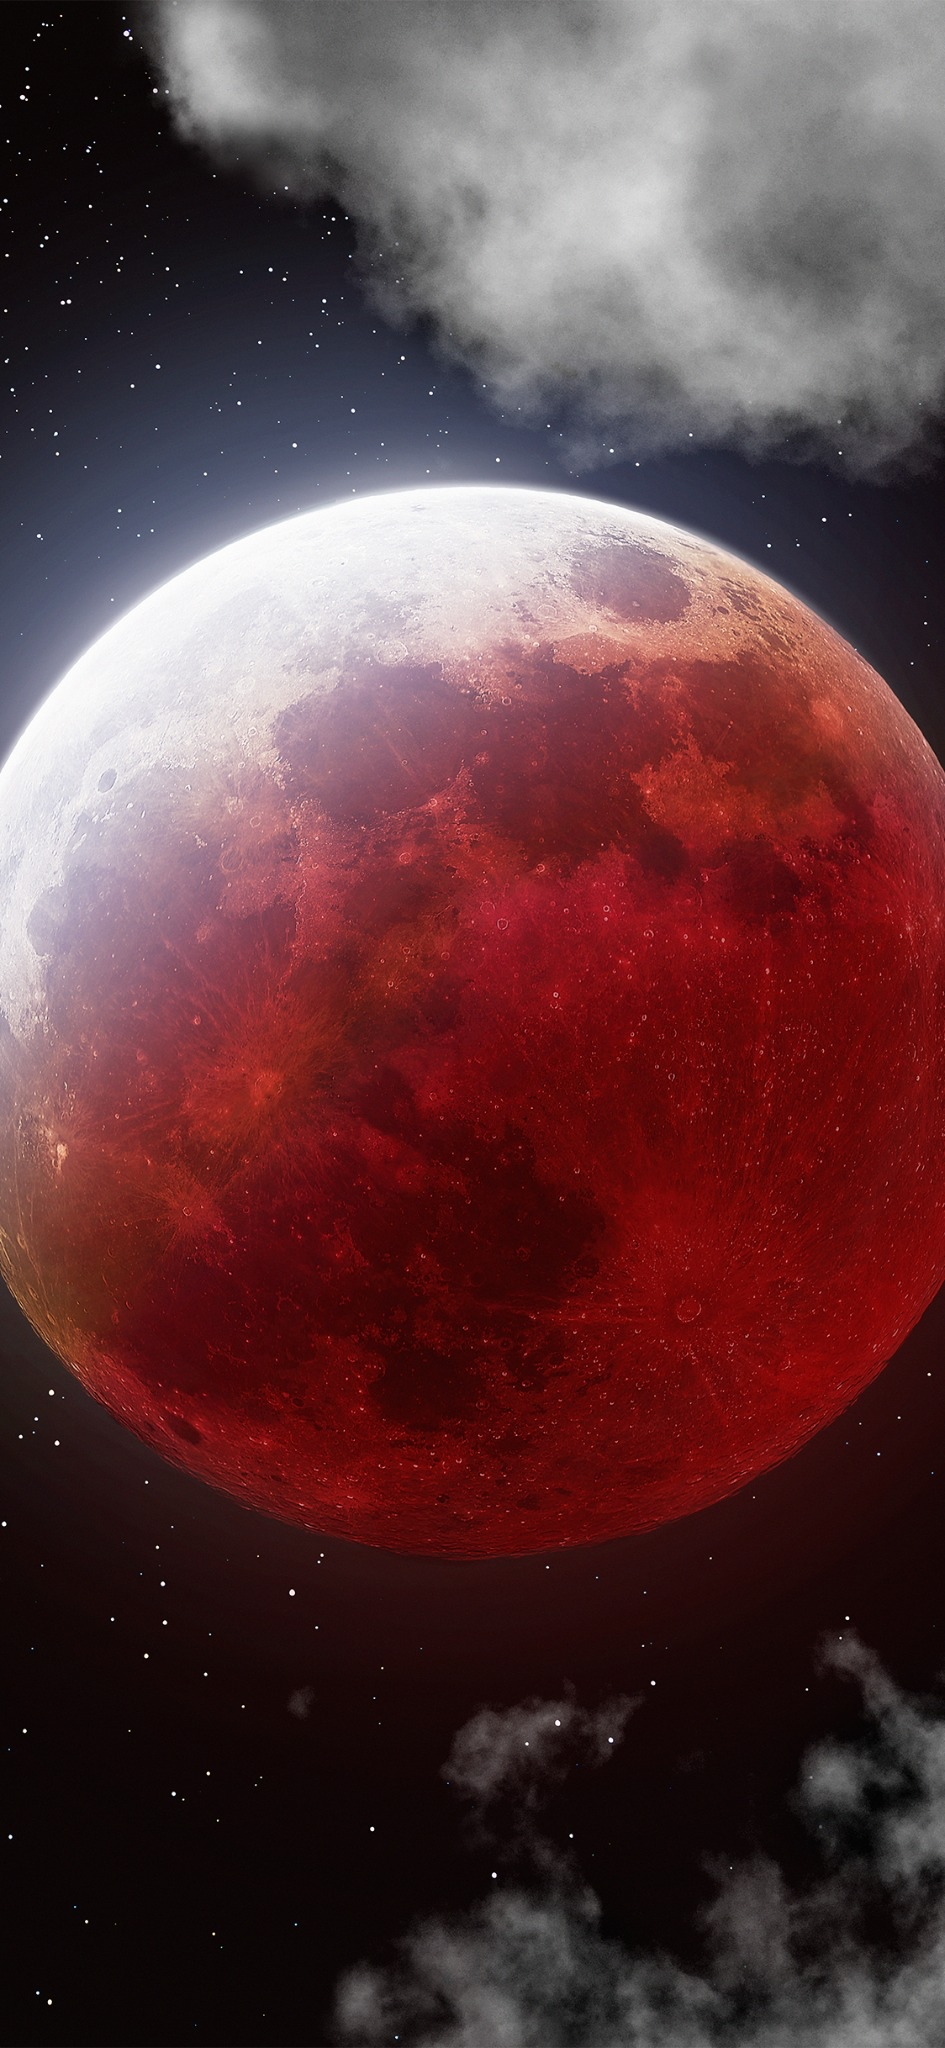 100 Megapixel Picture Of The Moon - HD Wallpaper